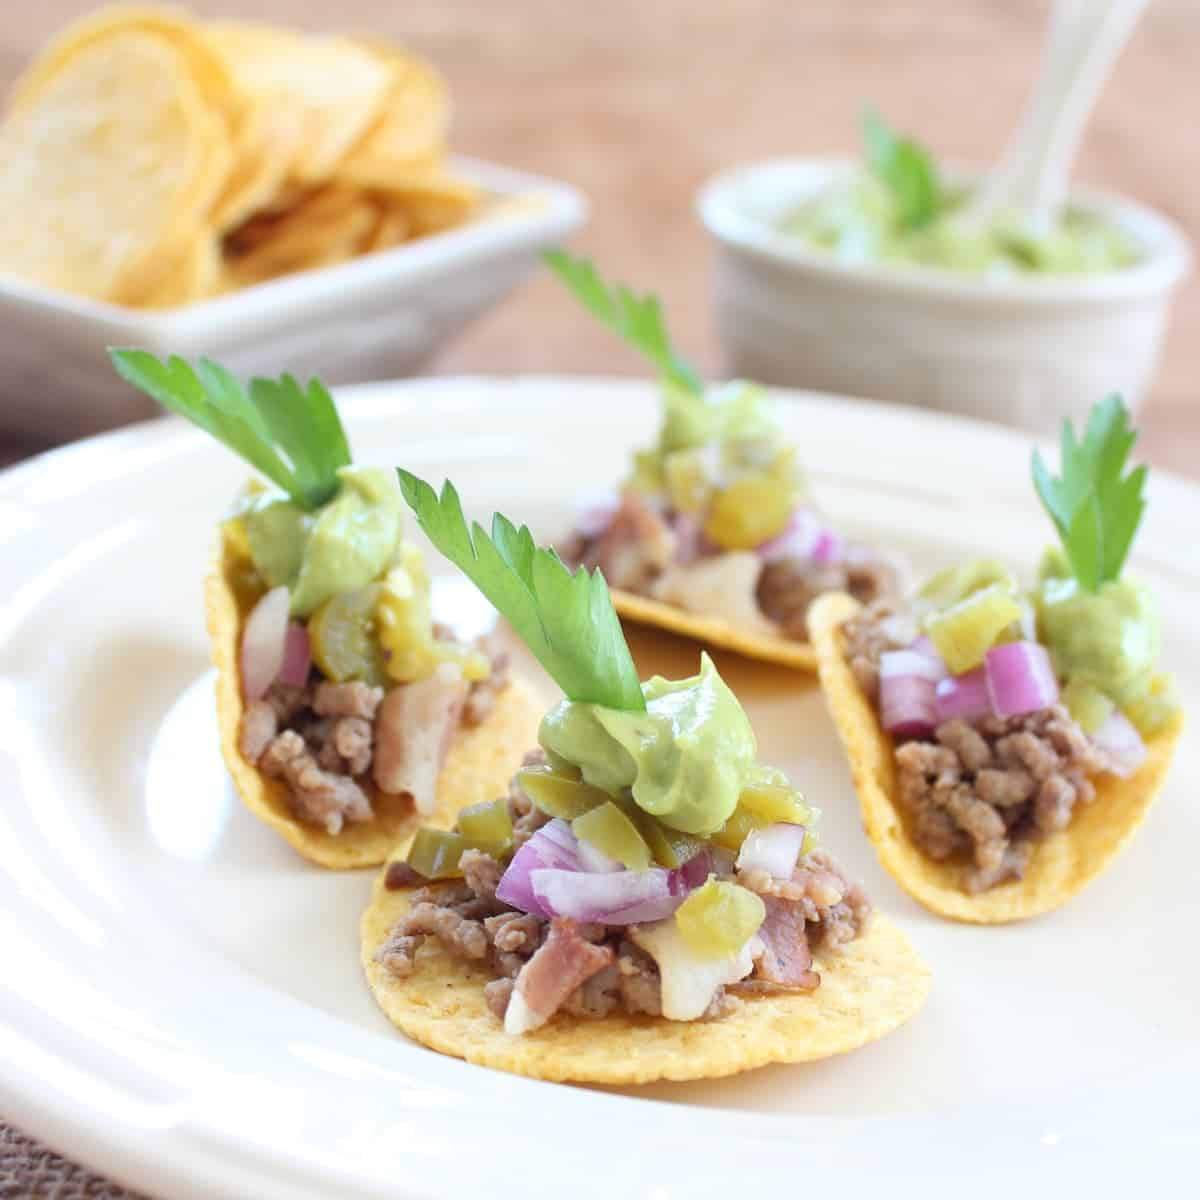 Mini Tacos with Avocado Cream Sauce